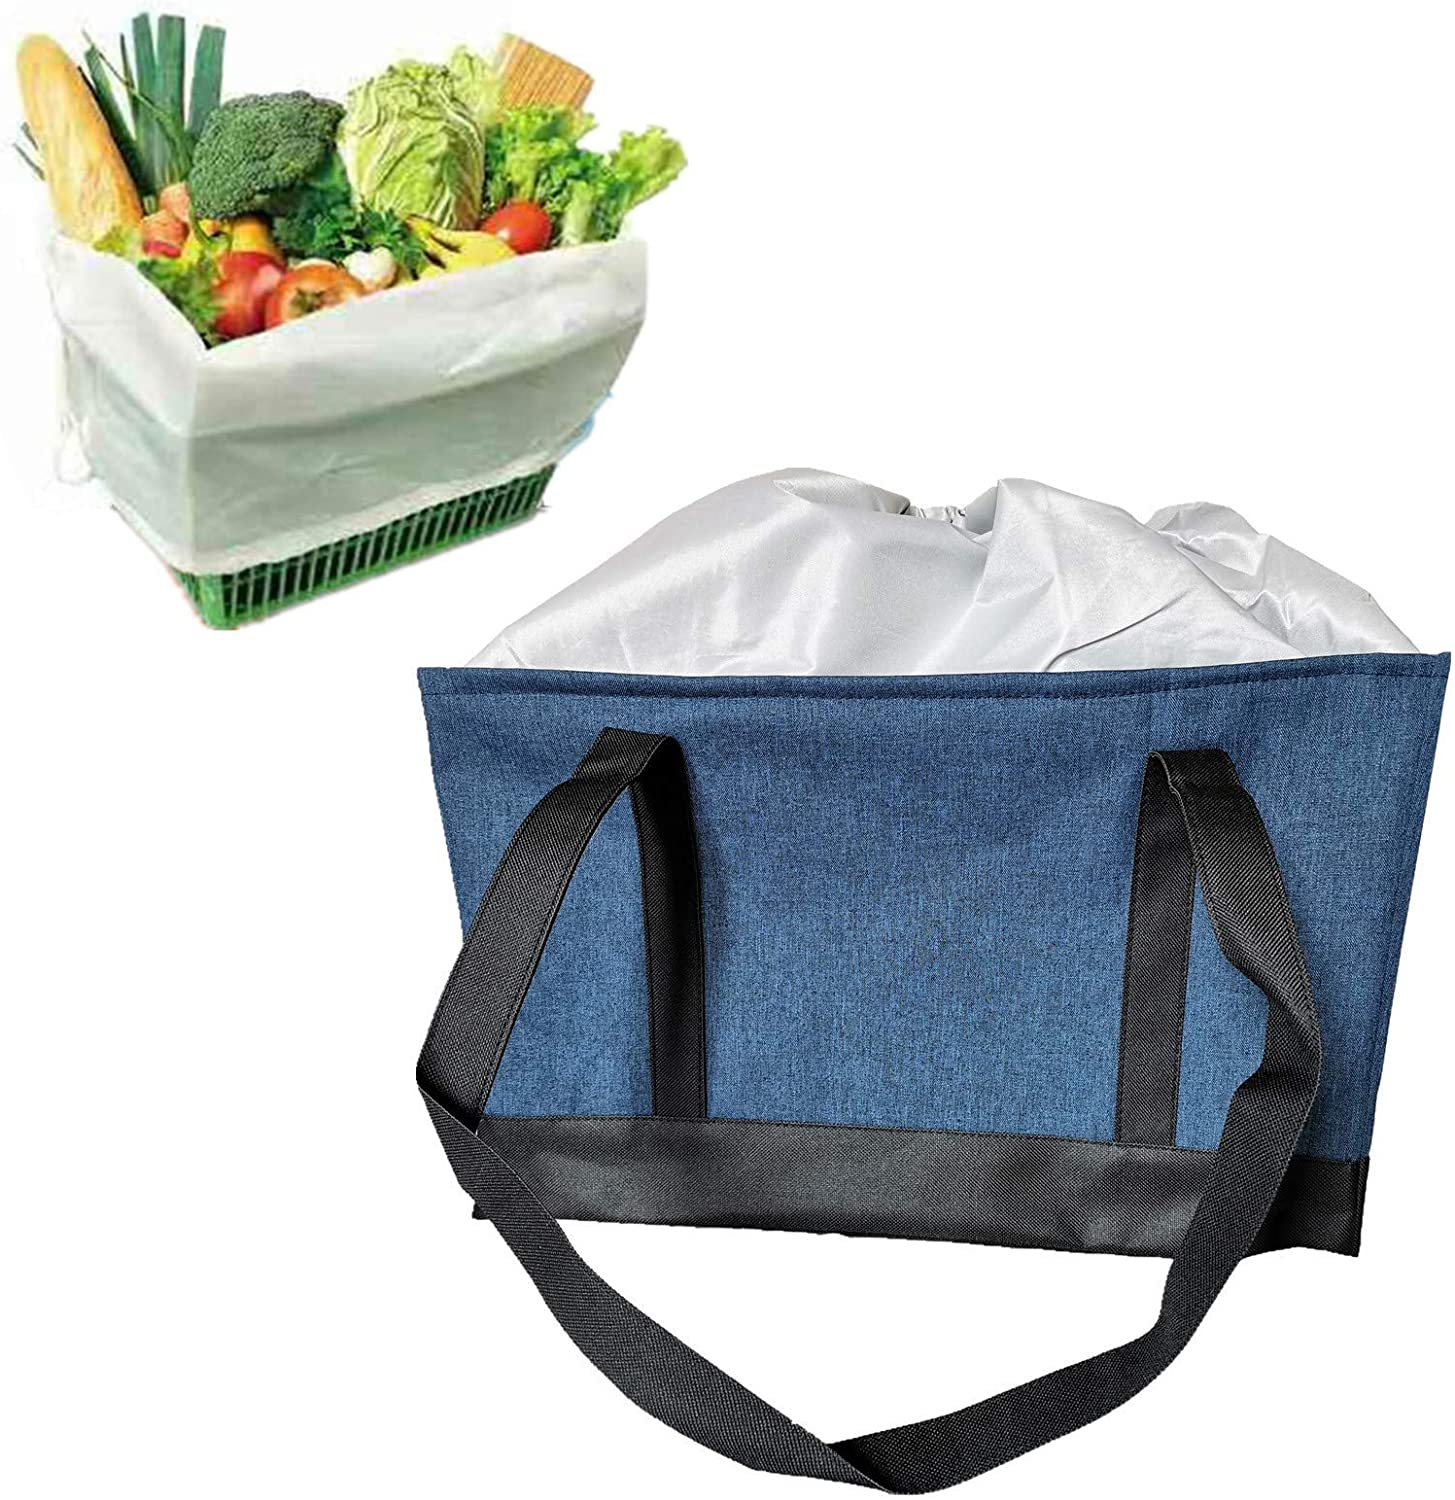 Large Reusable Insulated Grocery Shopping Cart Cooler Bag with Drawstring, Heavy Duty Alumimum Foam Tote Thermal Bag for Frozen Cold Hot Foods Transport, Blue